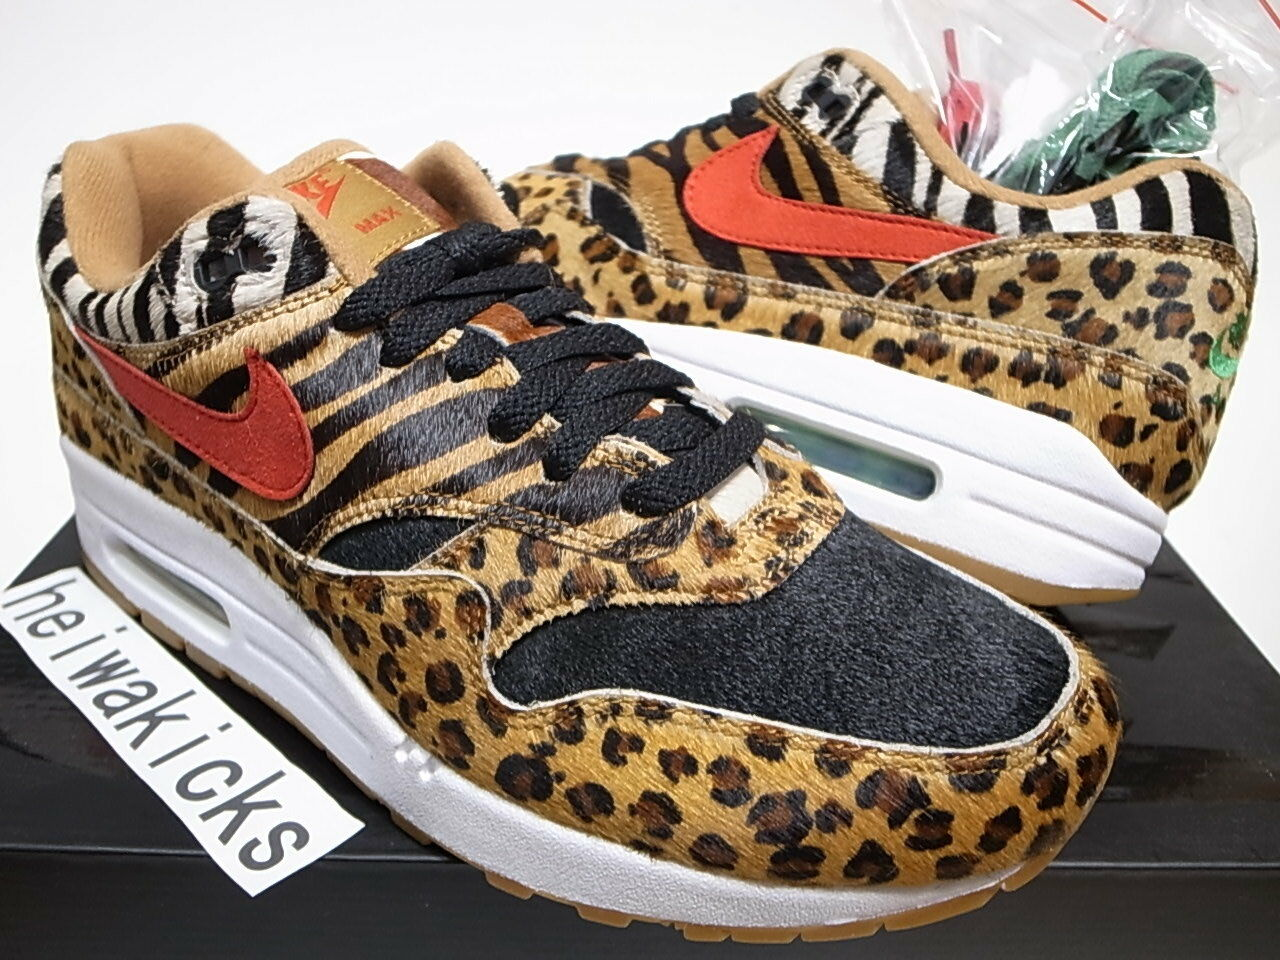 2018 ATMOS x NIKE AIR MAX 1 DLX ANIMAL PACK 2.0 WHEAT SPORT RED AQ0928-700 sz 8